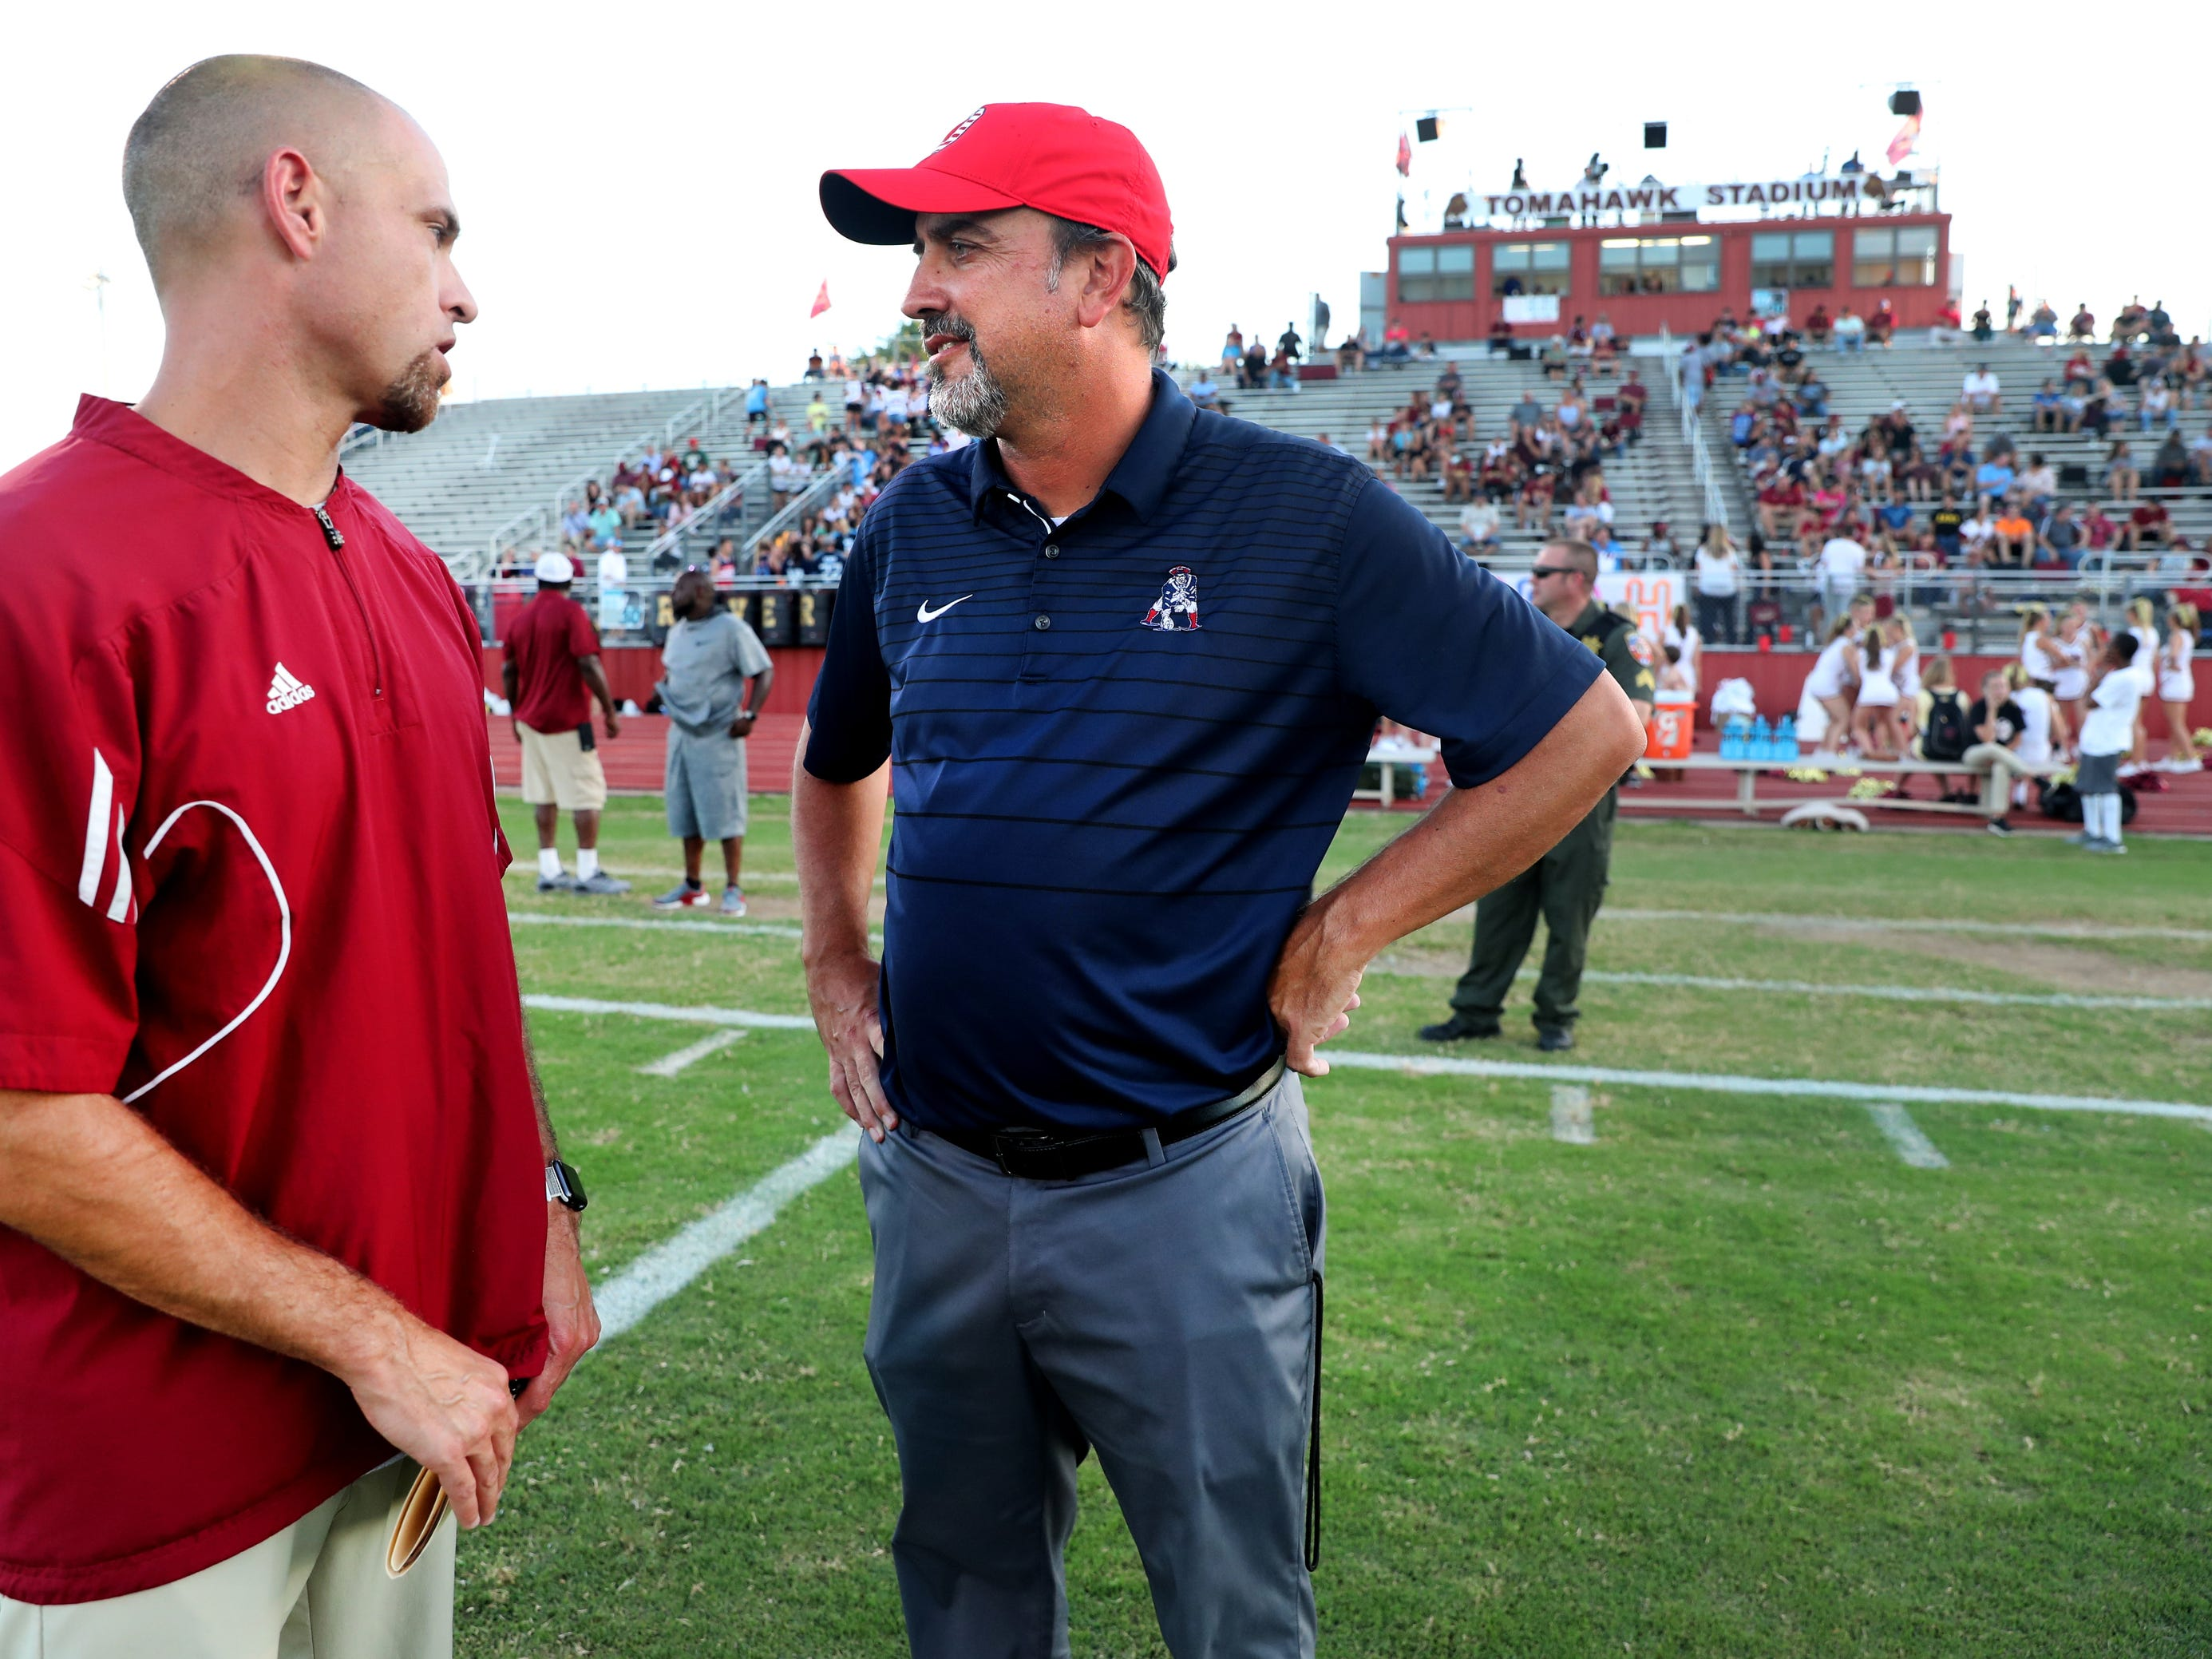 Riverdale's head football coach Will Kriesky, left and Oakland's head football coach Kevin Creasy before the game between Oakland and Riverdale, during the Battle of the Boro, on Friday, Sept. 14, 2018, at Riverdale.